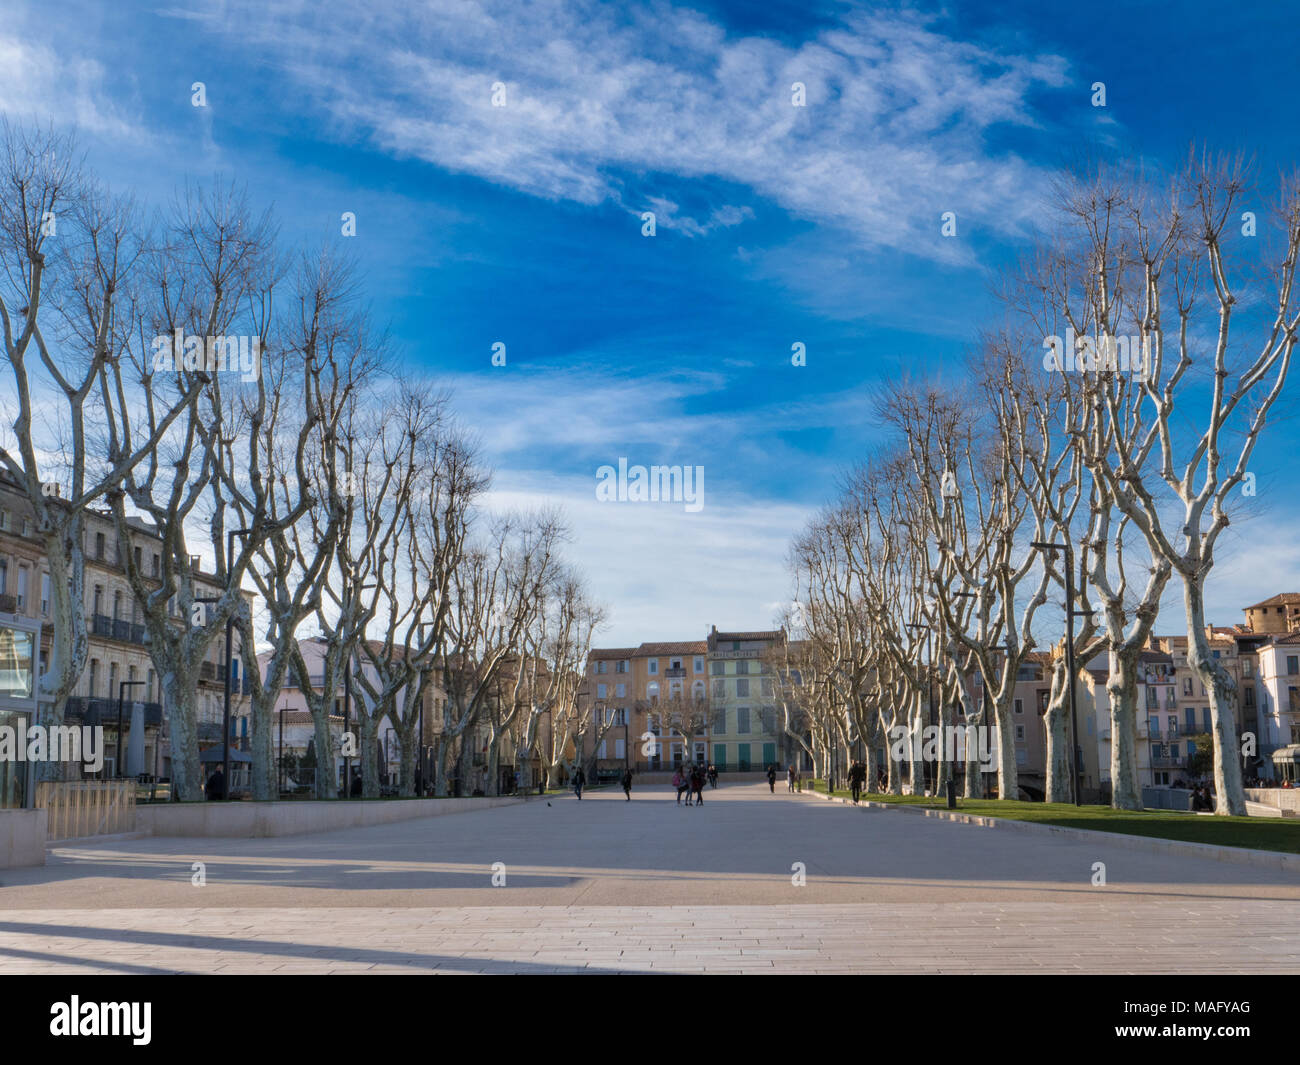 Cours Mirabeau promenade in the center of Narbonne on a sunny winter day - Stock Image